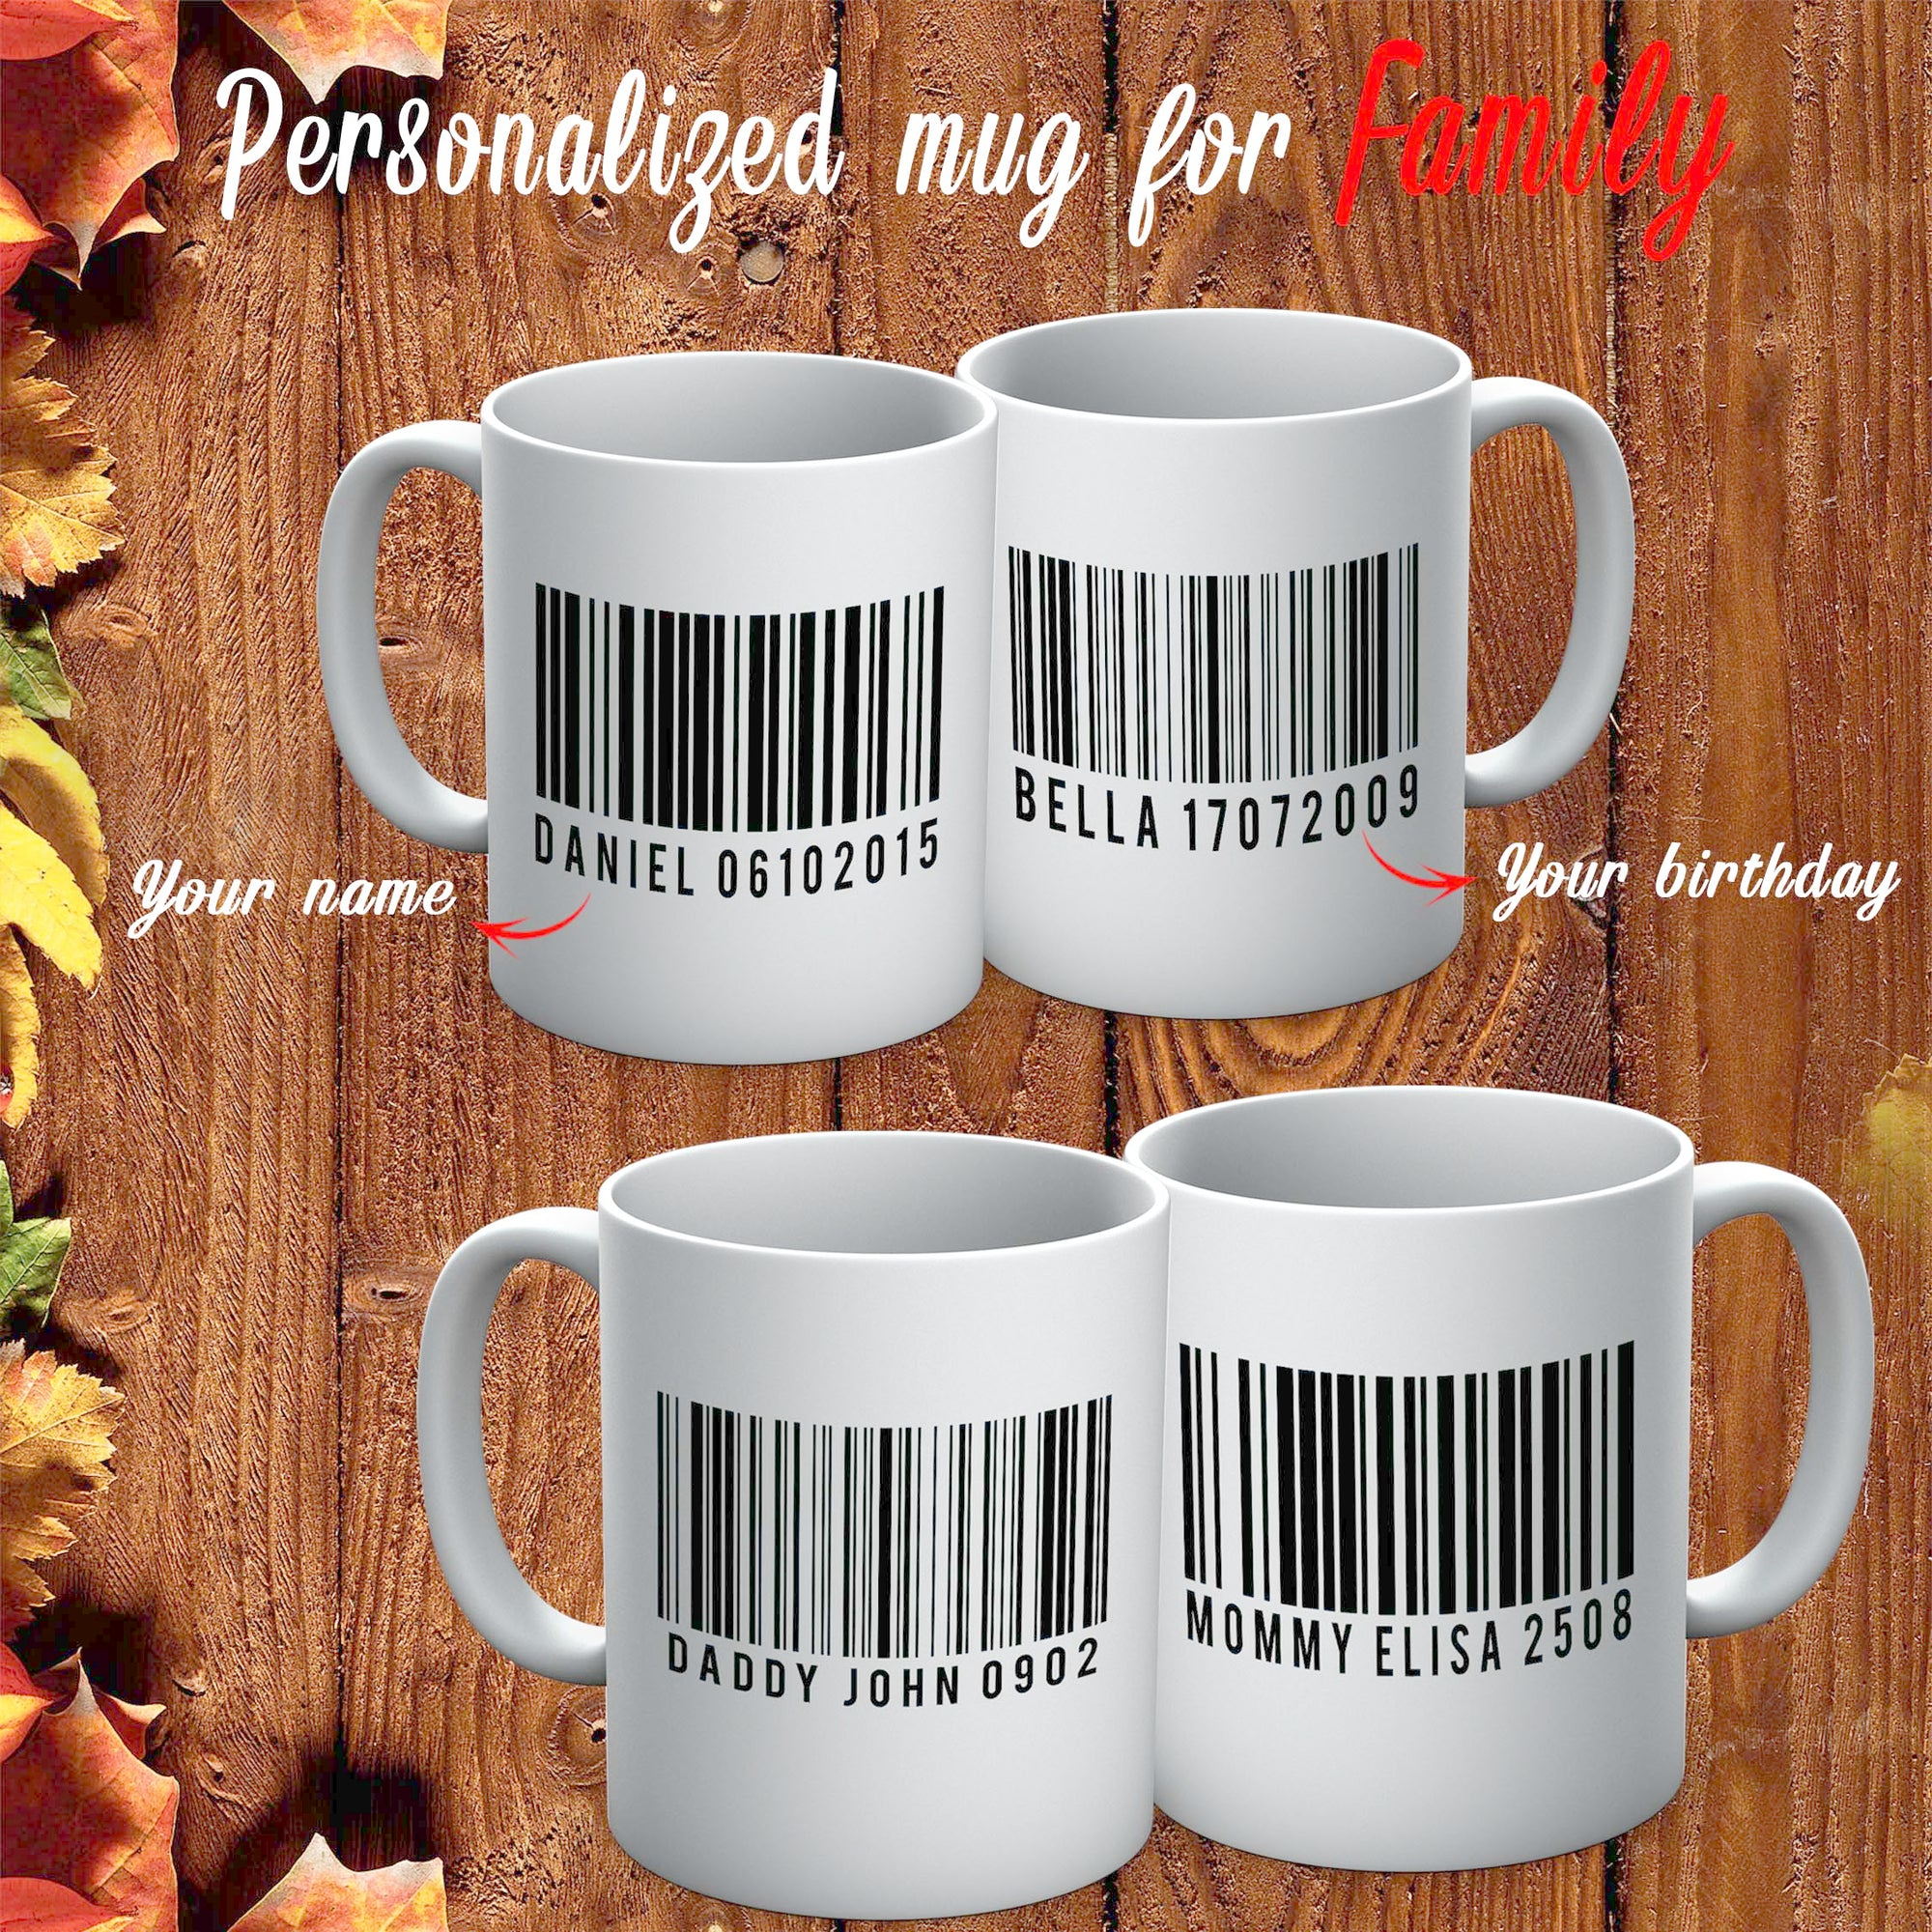 PERSONALIZED MUG - ADD YOUR KIDS NAME BARCODE ON YOUR MUG 1